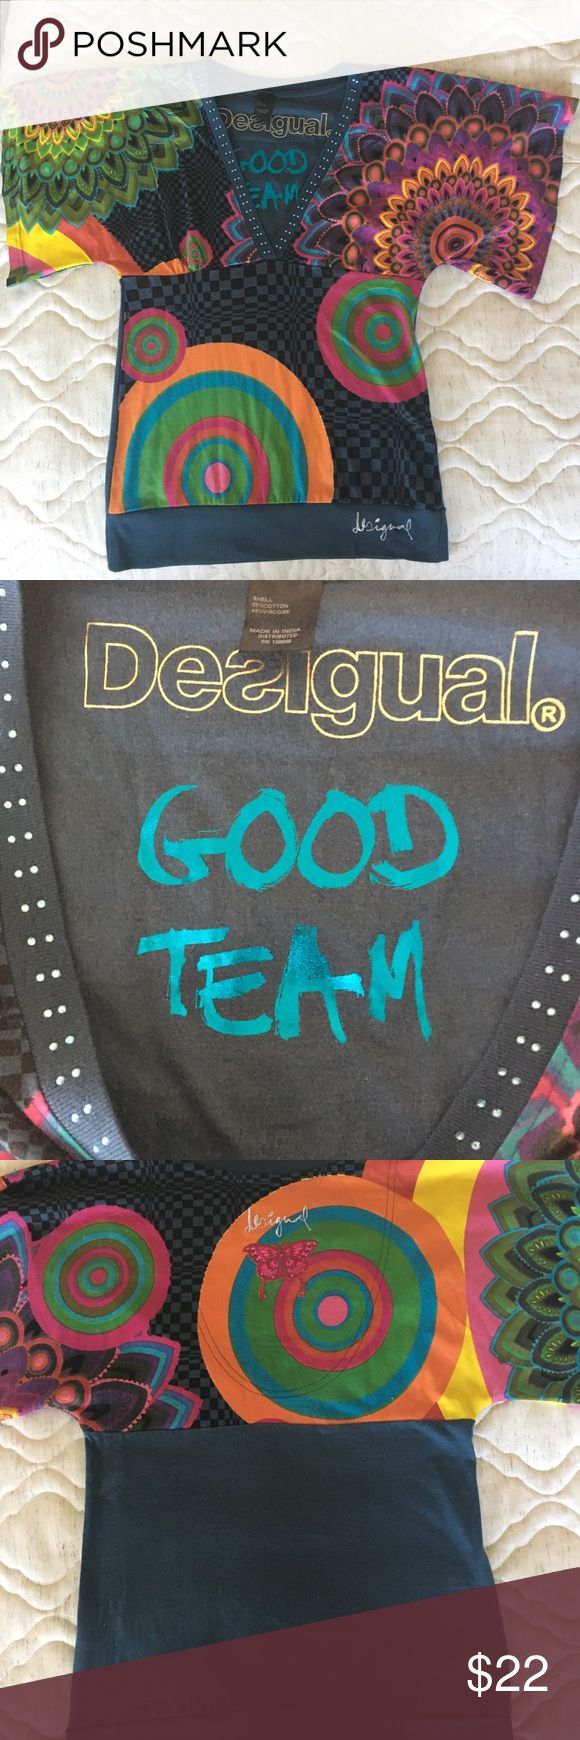 Desigual V neck top Totally cute Desigual top. Size Small in US. Measures 18 inches on the bottom. Cotton blend. EUC. Smoke and pet free home. Desigual Tops Tees - Short Sleeve